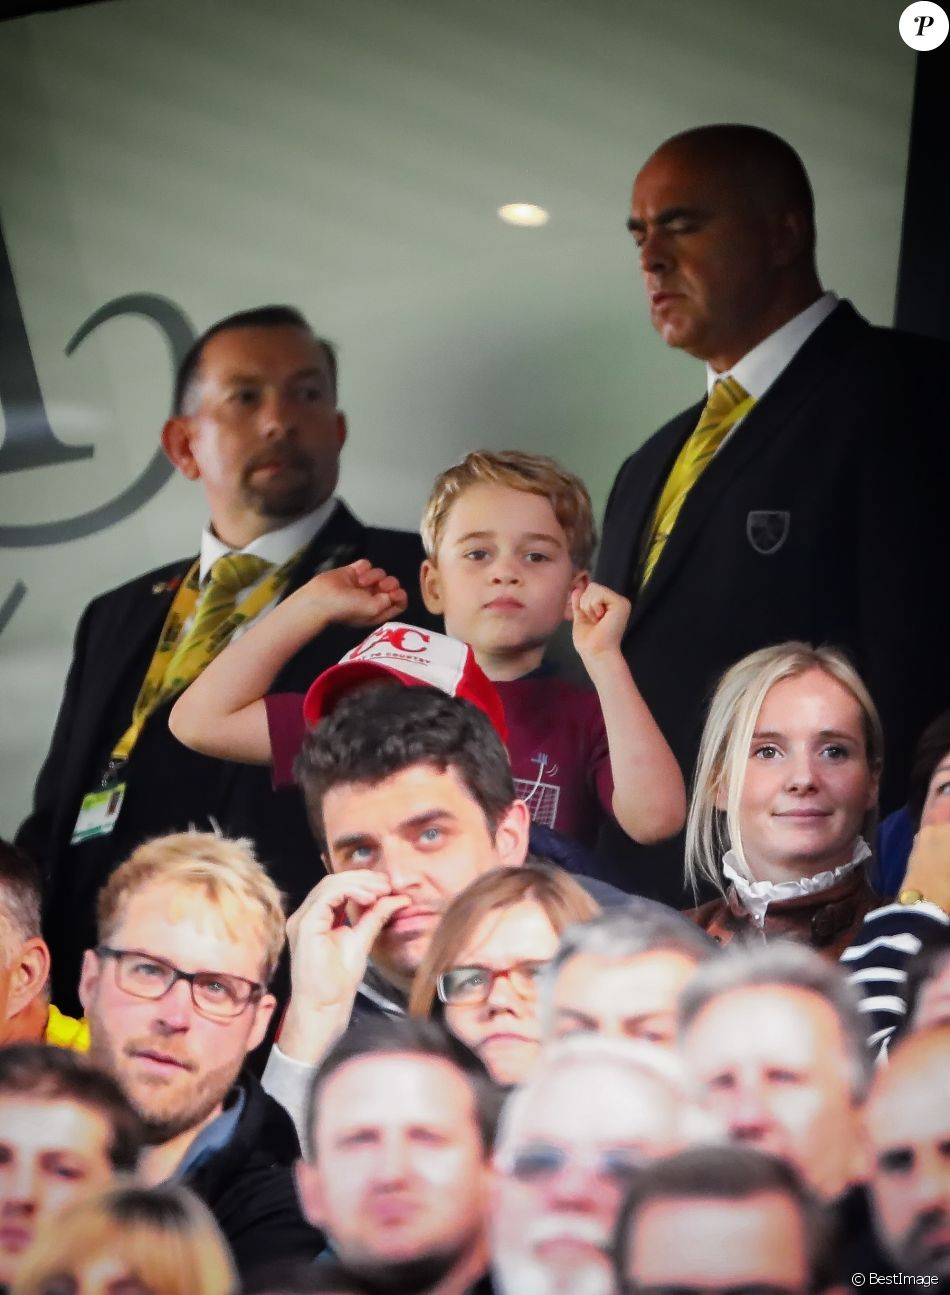 Le prince William, duc de Cambridge, Catherine (Kate) Middleton, duchesse de Cambridge et leurs enfants, le prince George et la princesse Charlotte, assistent à un match de Premier League opposant Norwich City à Aston Villa au stade Carrow Road, à Norwich, Royaume Uni, le 5 octobre 2019. Aston Villa a gagné 5-1.